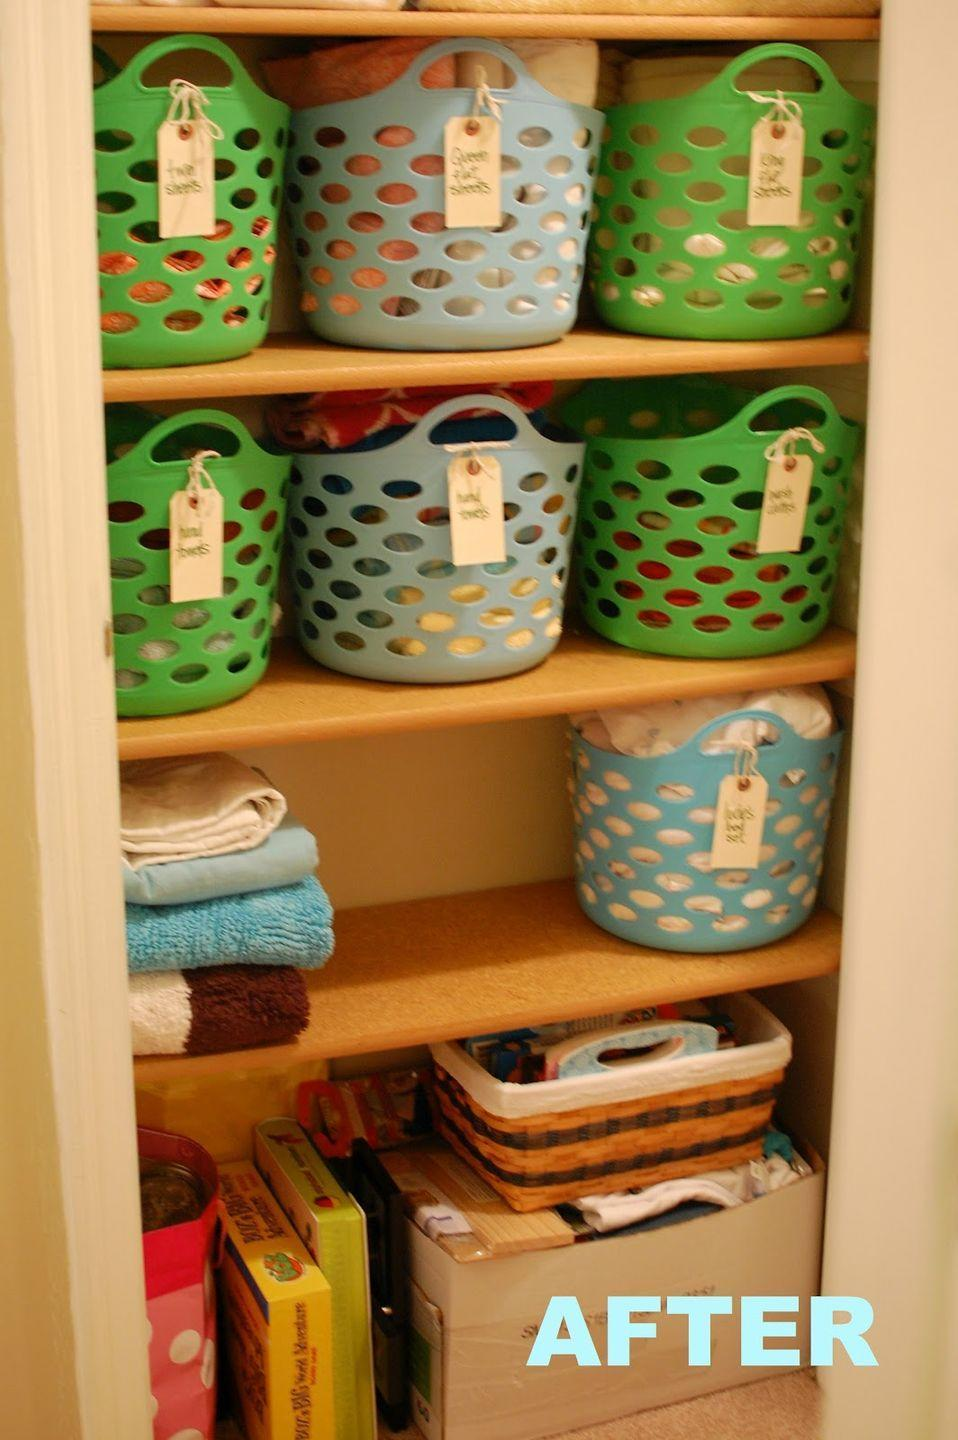 """<p>All you need to do to make your life way easier is invest in a few plastic baskets. Here, labels on the handle make it clear where twin sheets versus king sheets are stored.</p><p><em><a href=""""http://abirdandabean.com/2012/03/10-linen-closet-redo.html"""" rel=""""nofollow noopener"""" target=""""_blank"""" data-ylk=""""slk:See more at A Bird and a Bean »"""" class=""""link rapid-noclick-resp"""">See more at A Bird and a Bean »</a></em></p><p><strong>What you'll need: </strong><span class=""""redactor-invisible-space"""">colorful bins, $3, <a href=""""https://www.amazon.com/Wa-Desktop-storage-Colorful-Organizer/dp/B073B1SMQT/?tag=syn-yahoo-20&ascsubtag=%5Bartid%7C10063.g.36078080%5Bsrc%7Cyahoo-us"""" rel=""""nofollow noopener"""" target=""""_blank"""" data-ylk=""""slk:amazon.com"""" class=""""link rapid-noclick-resp"""">amazon.com</a></span><br></p>"""